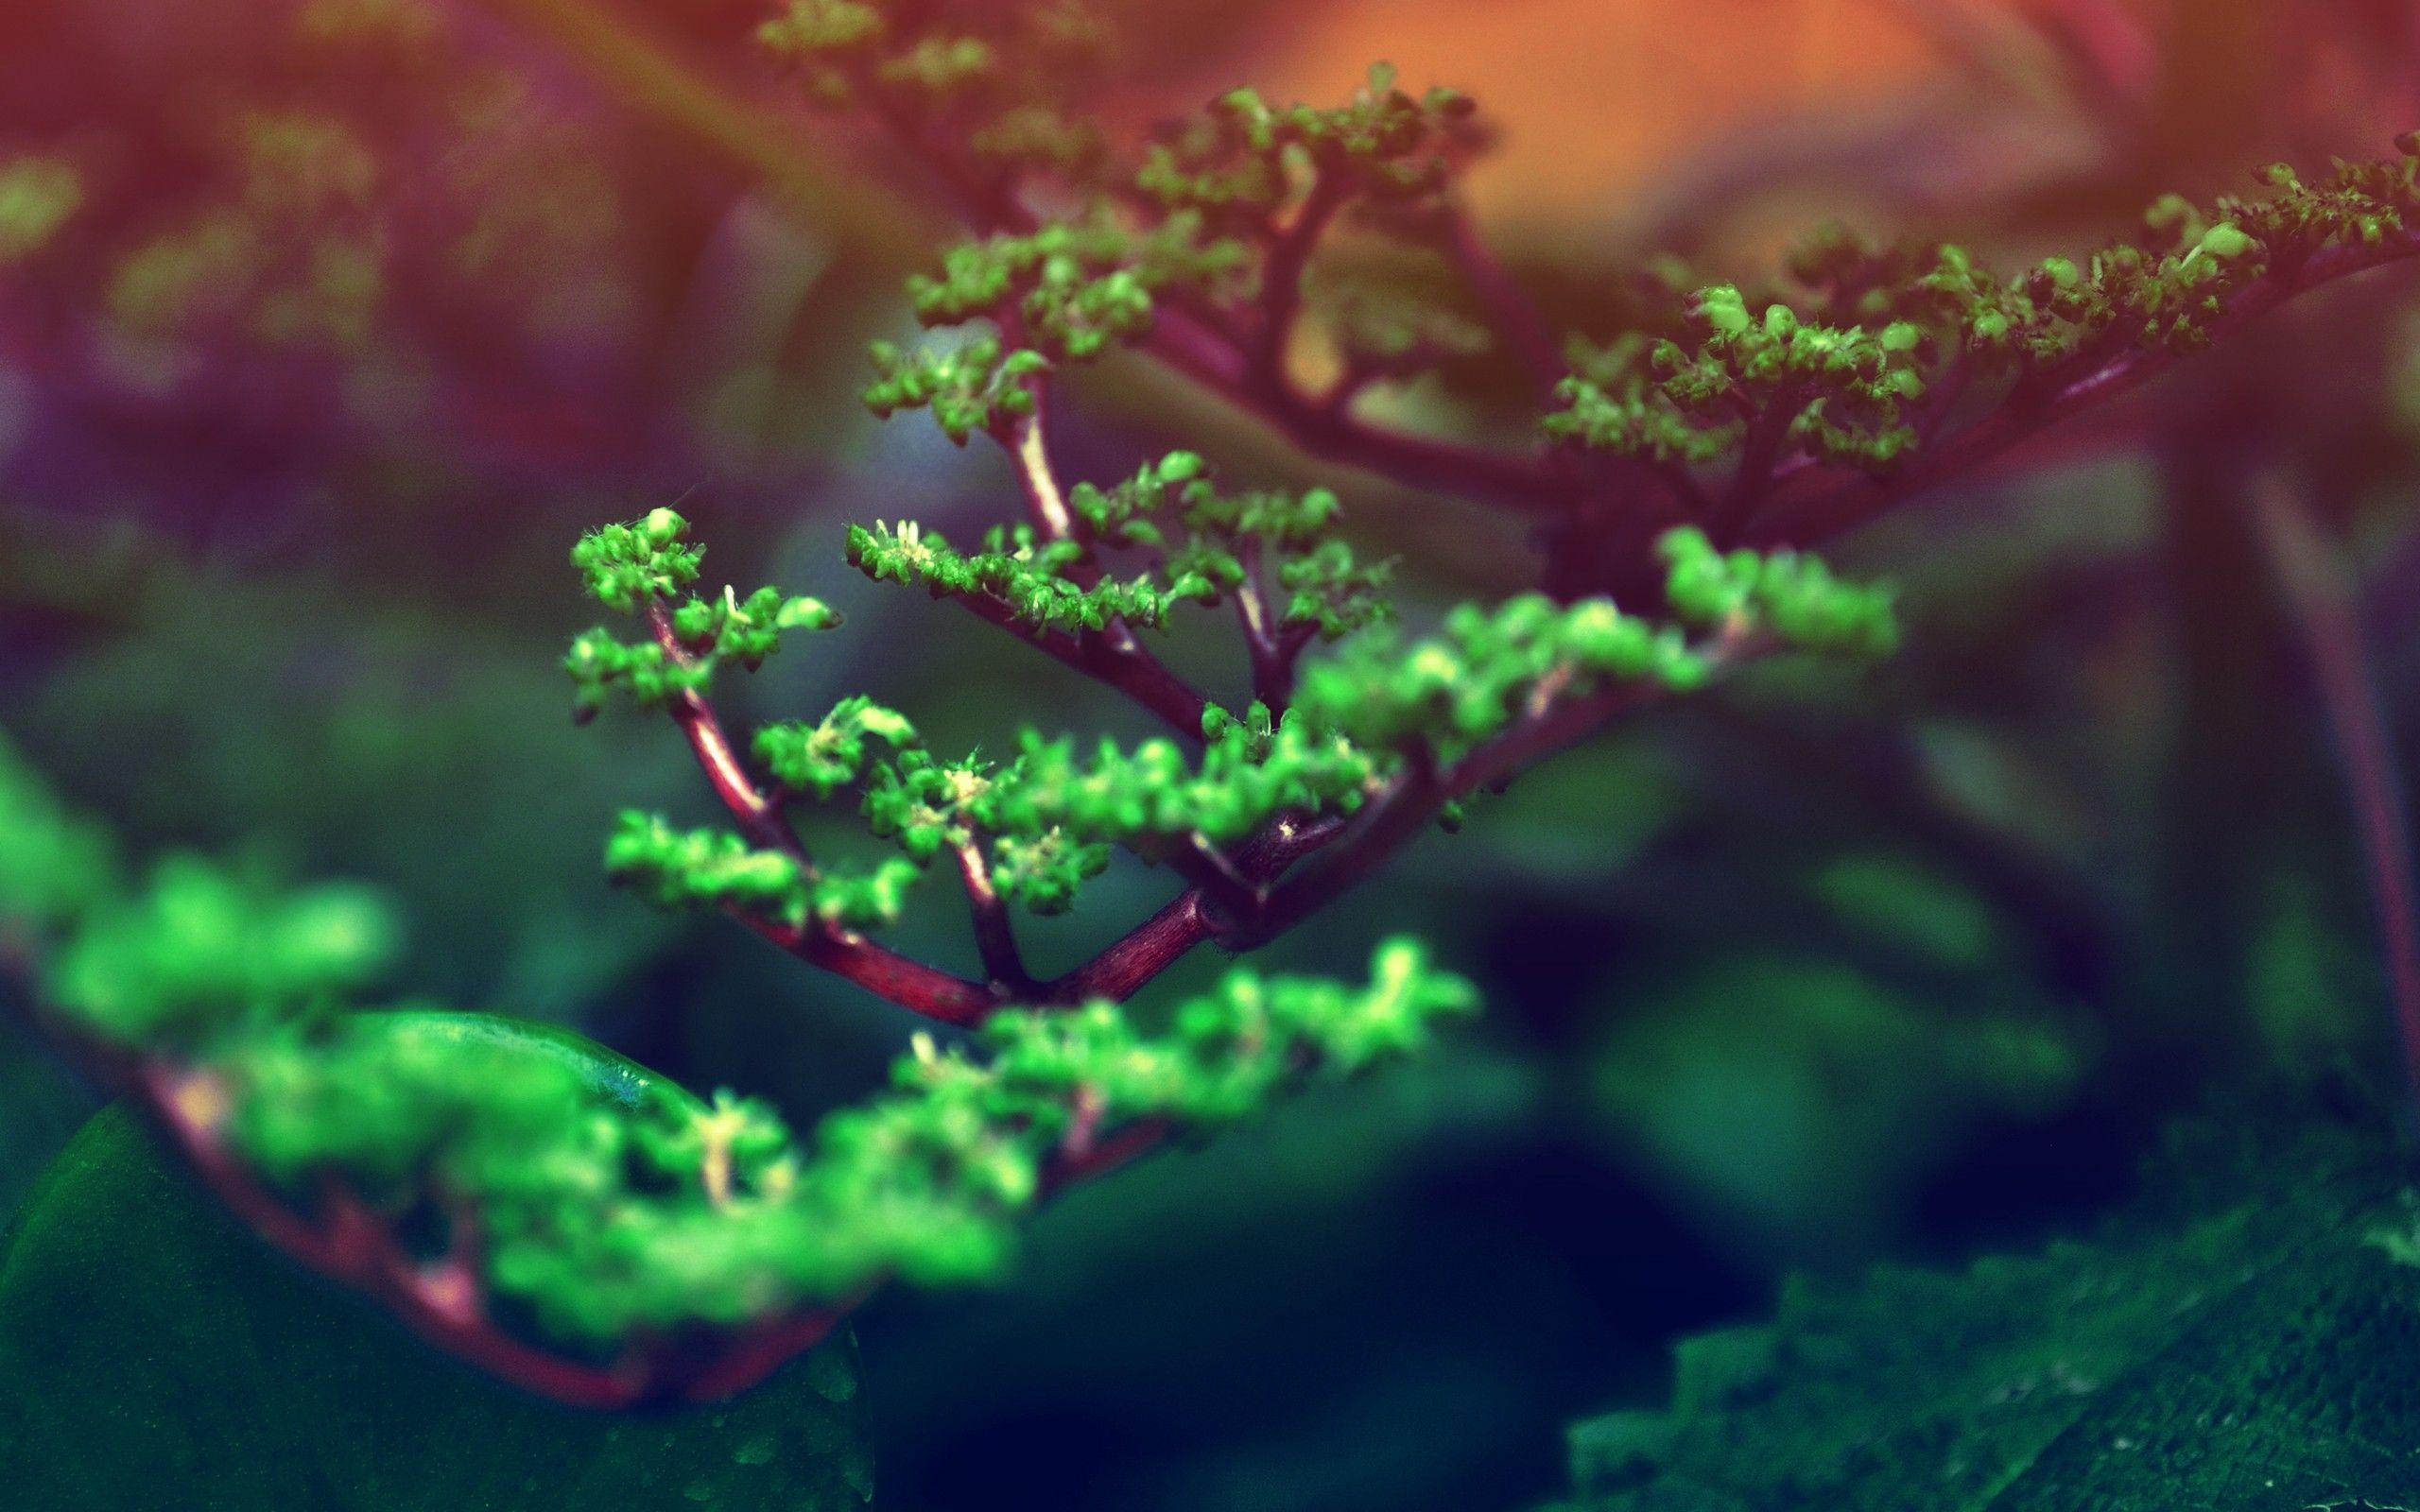 Macro Bonsai Tree Branch widescreen wallpaper | Wide-